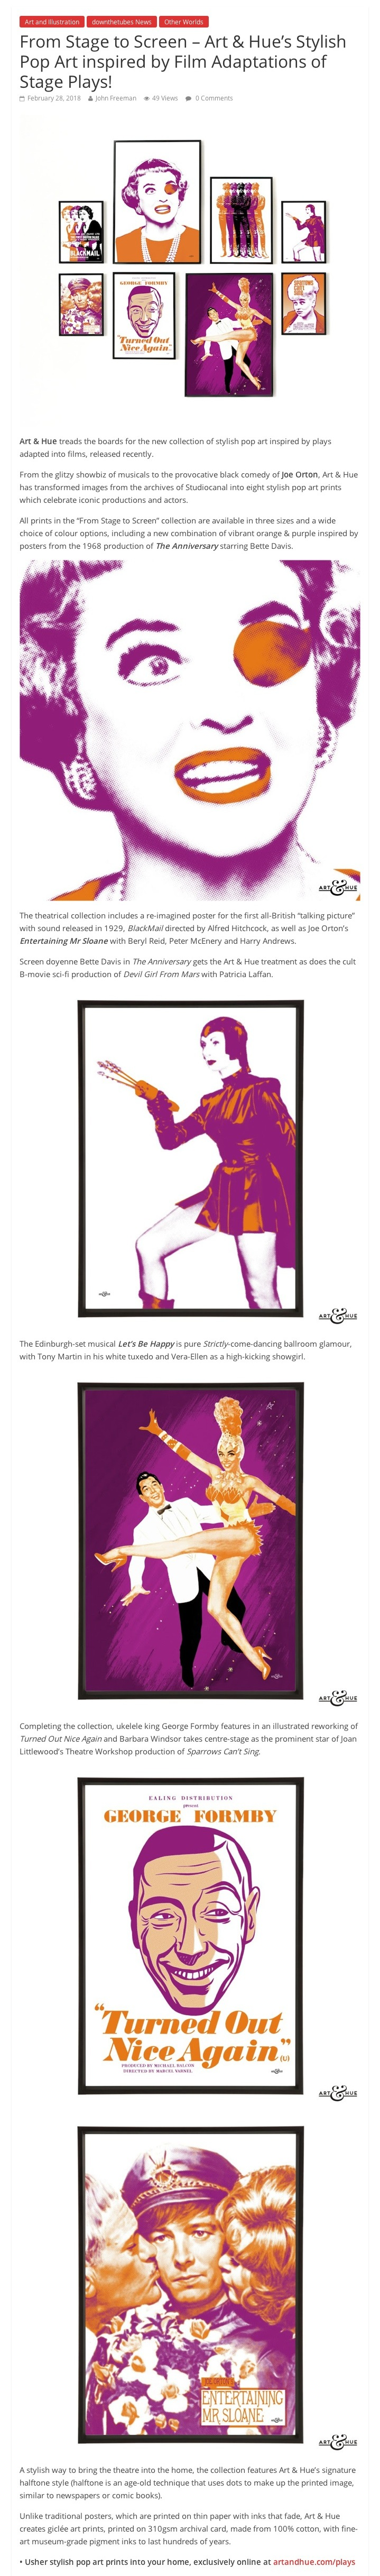 From Stage to Screen – Art & Hue's Stylish Pop Art inspired by Film Adaptations of Stage Plays! – downthetubes.net